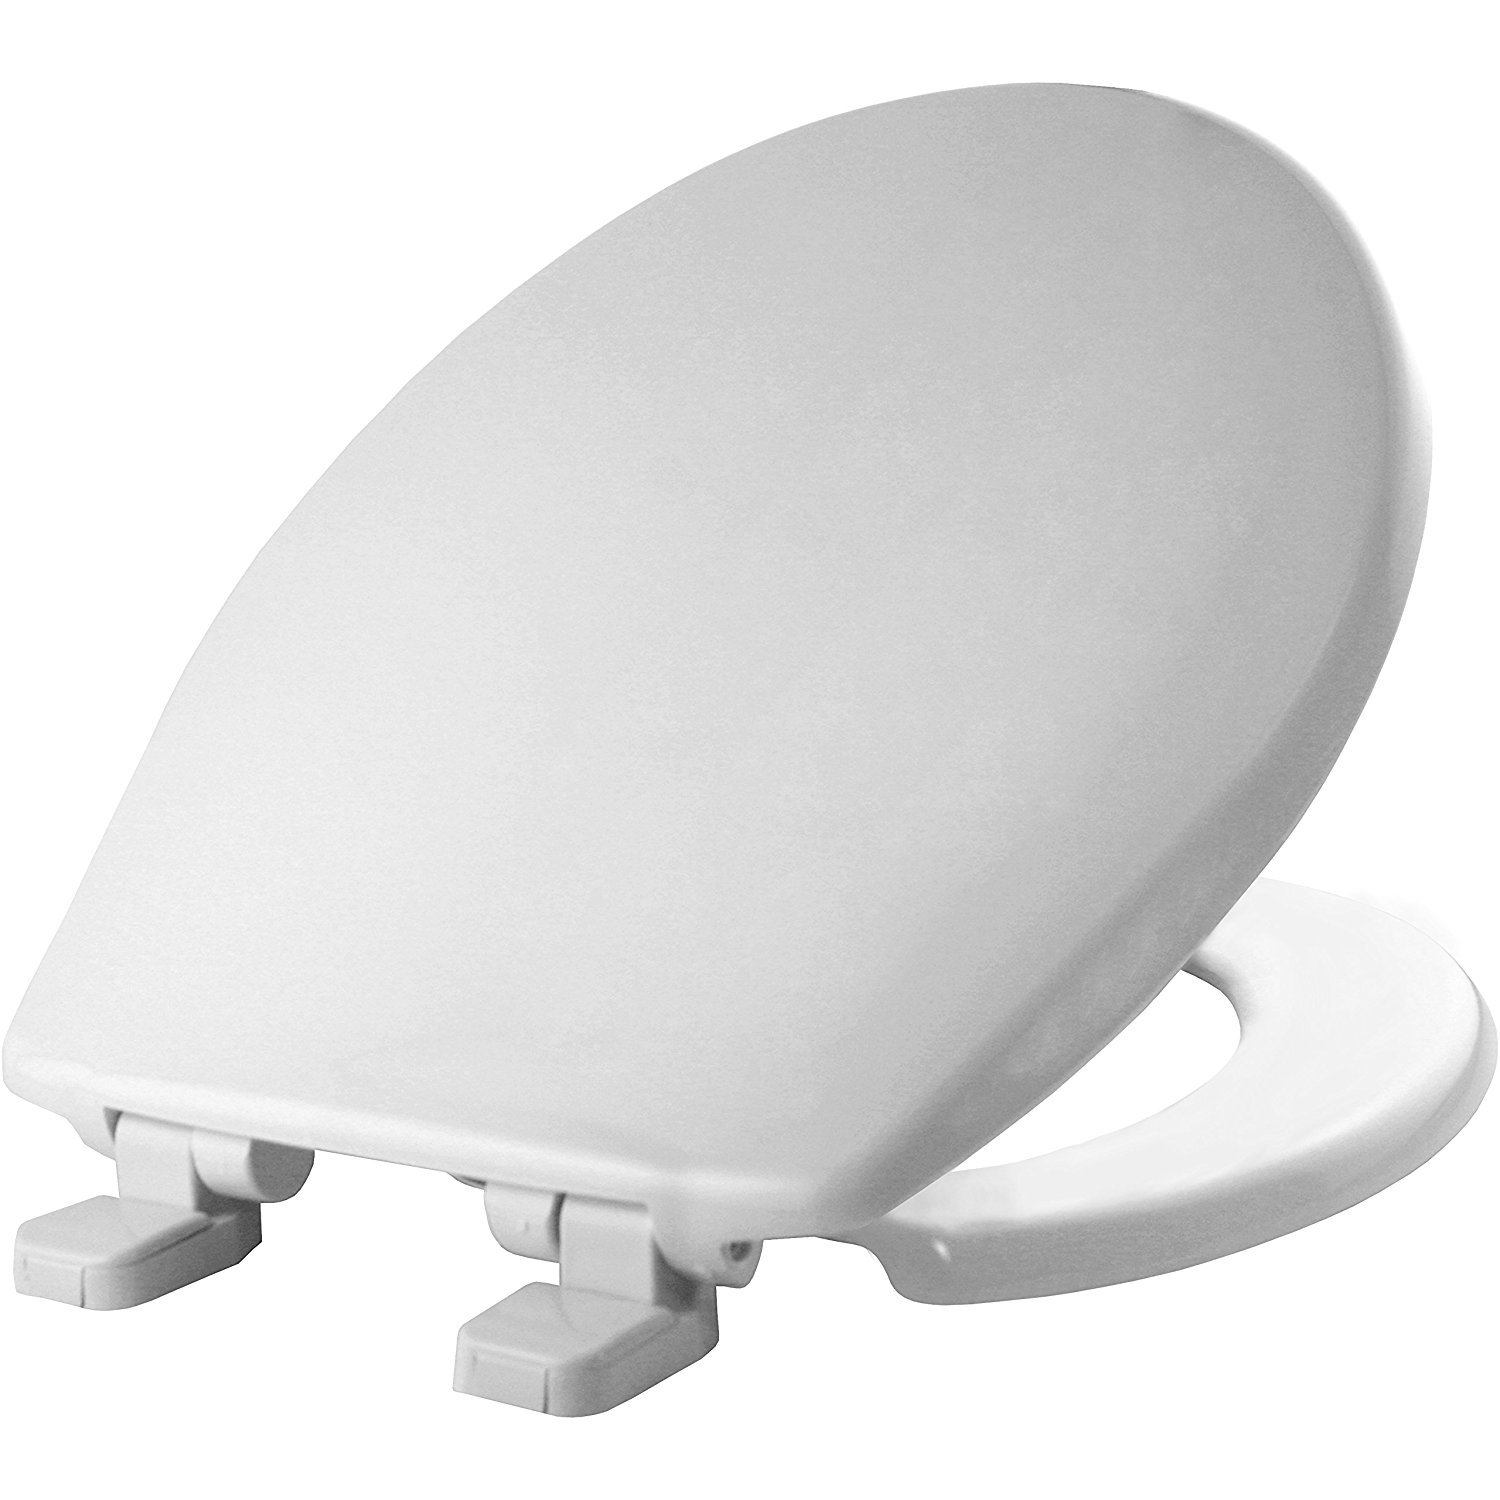 Mayfair Solid Plastic Toilet Seat featuring Slow-Close Hinges and STA-TITE Seat Fastening System, Round, White, 80SLOW 000